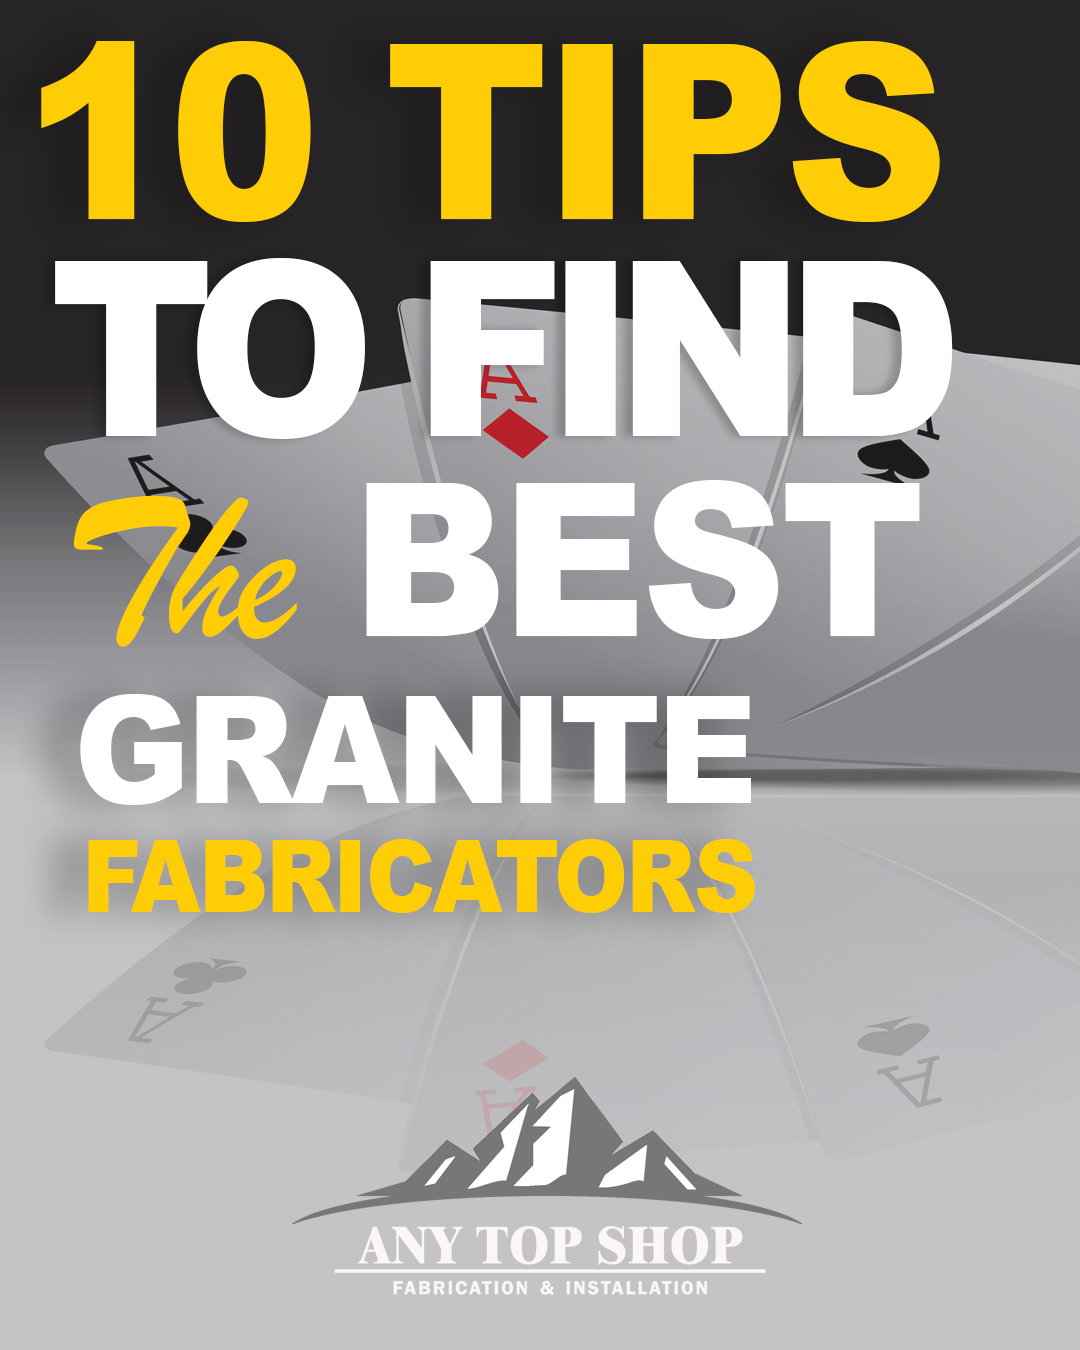 10 Tips to Find the Best Granite Fabricators